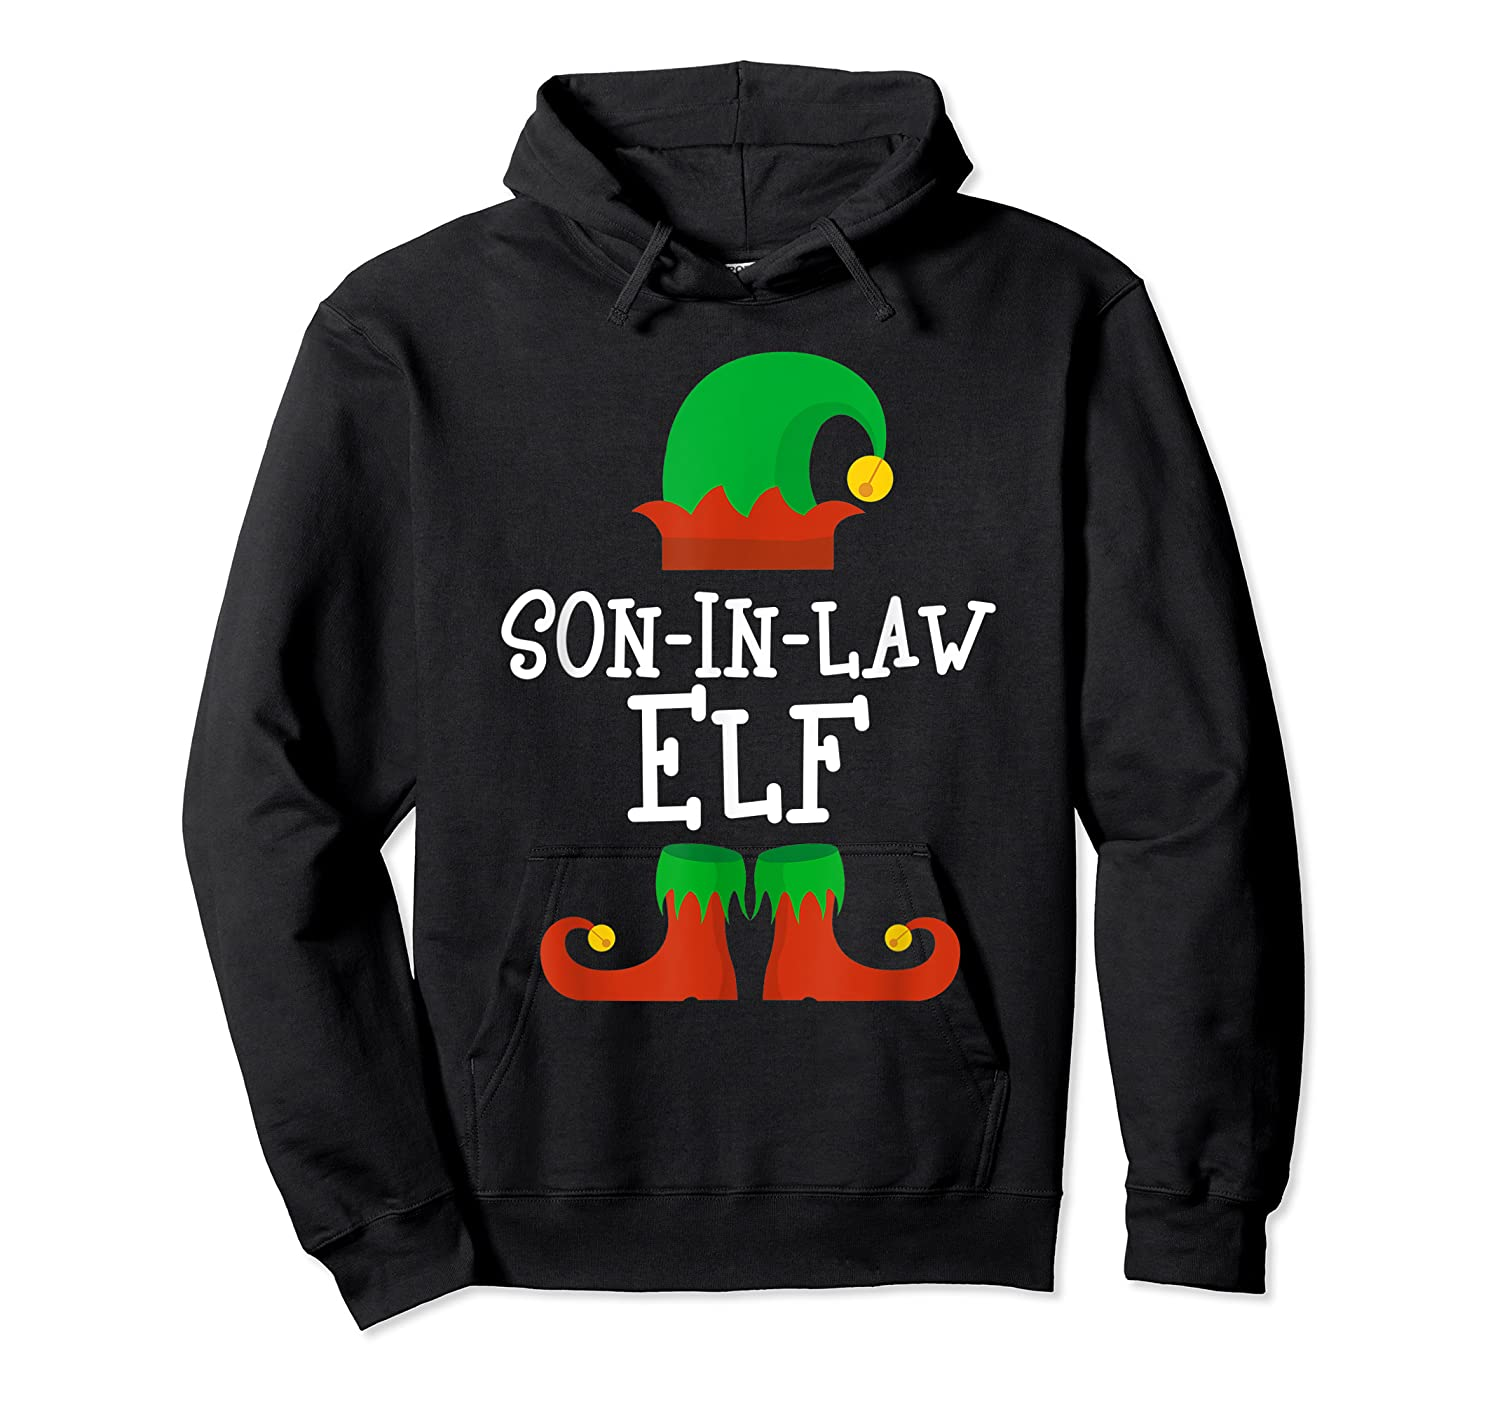 Son-in-law Elf Christmas Funny T-shirt Unisex Pullover Hoodie